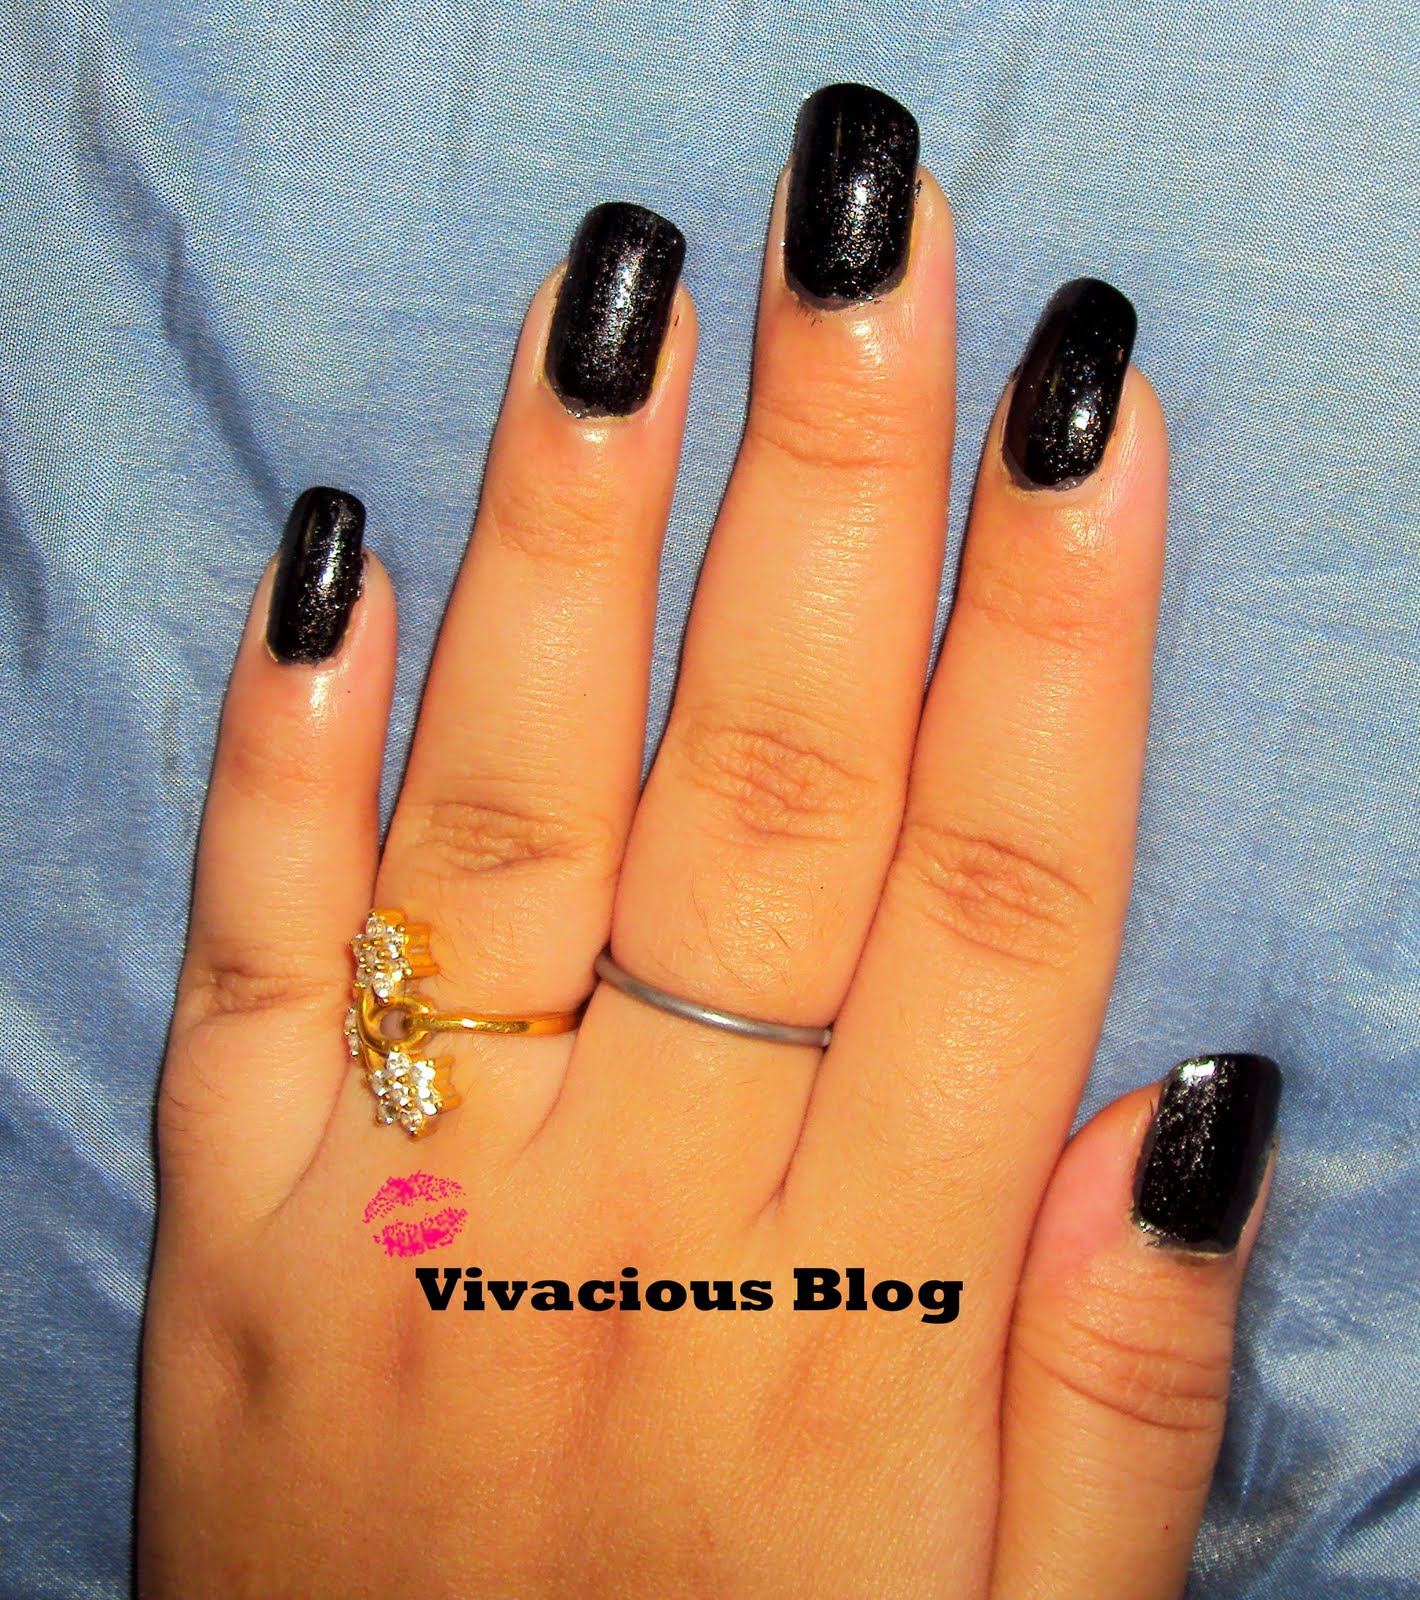 Prettyfulz Fall Nail Art Design 2011: Vivacious Blog: Abstract Nail Art